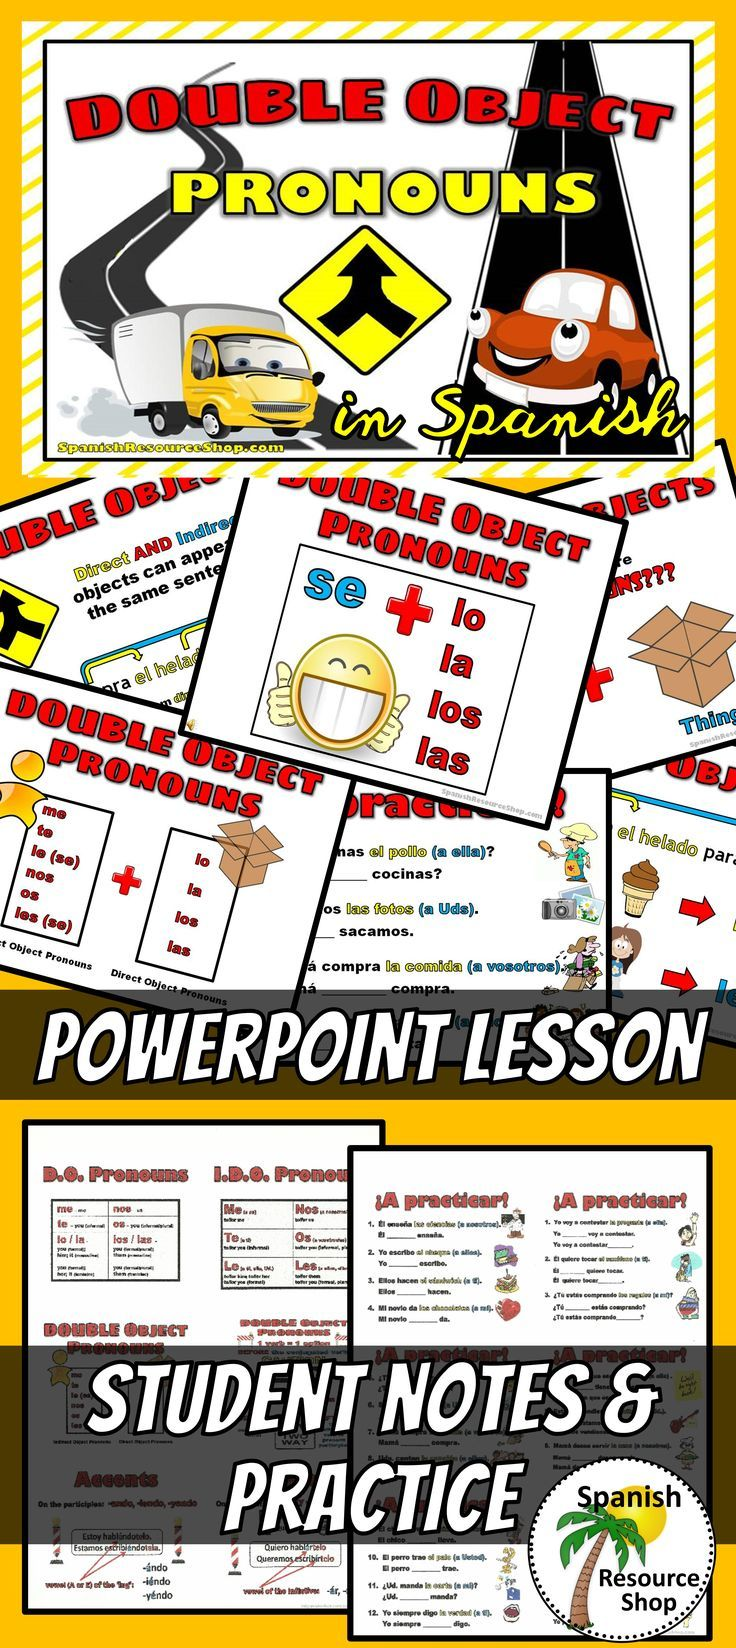 Fun Animated Ppt Helps Students To Understand The Double Object Pronouns Spanish Teacher Resources Learning Spanish Spanish Lesson Plans